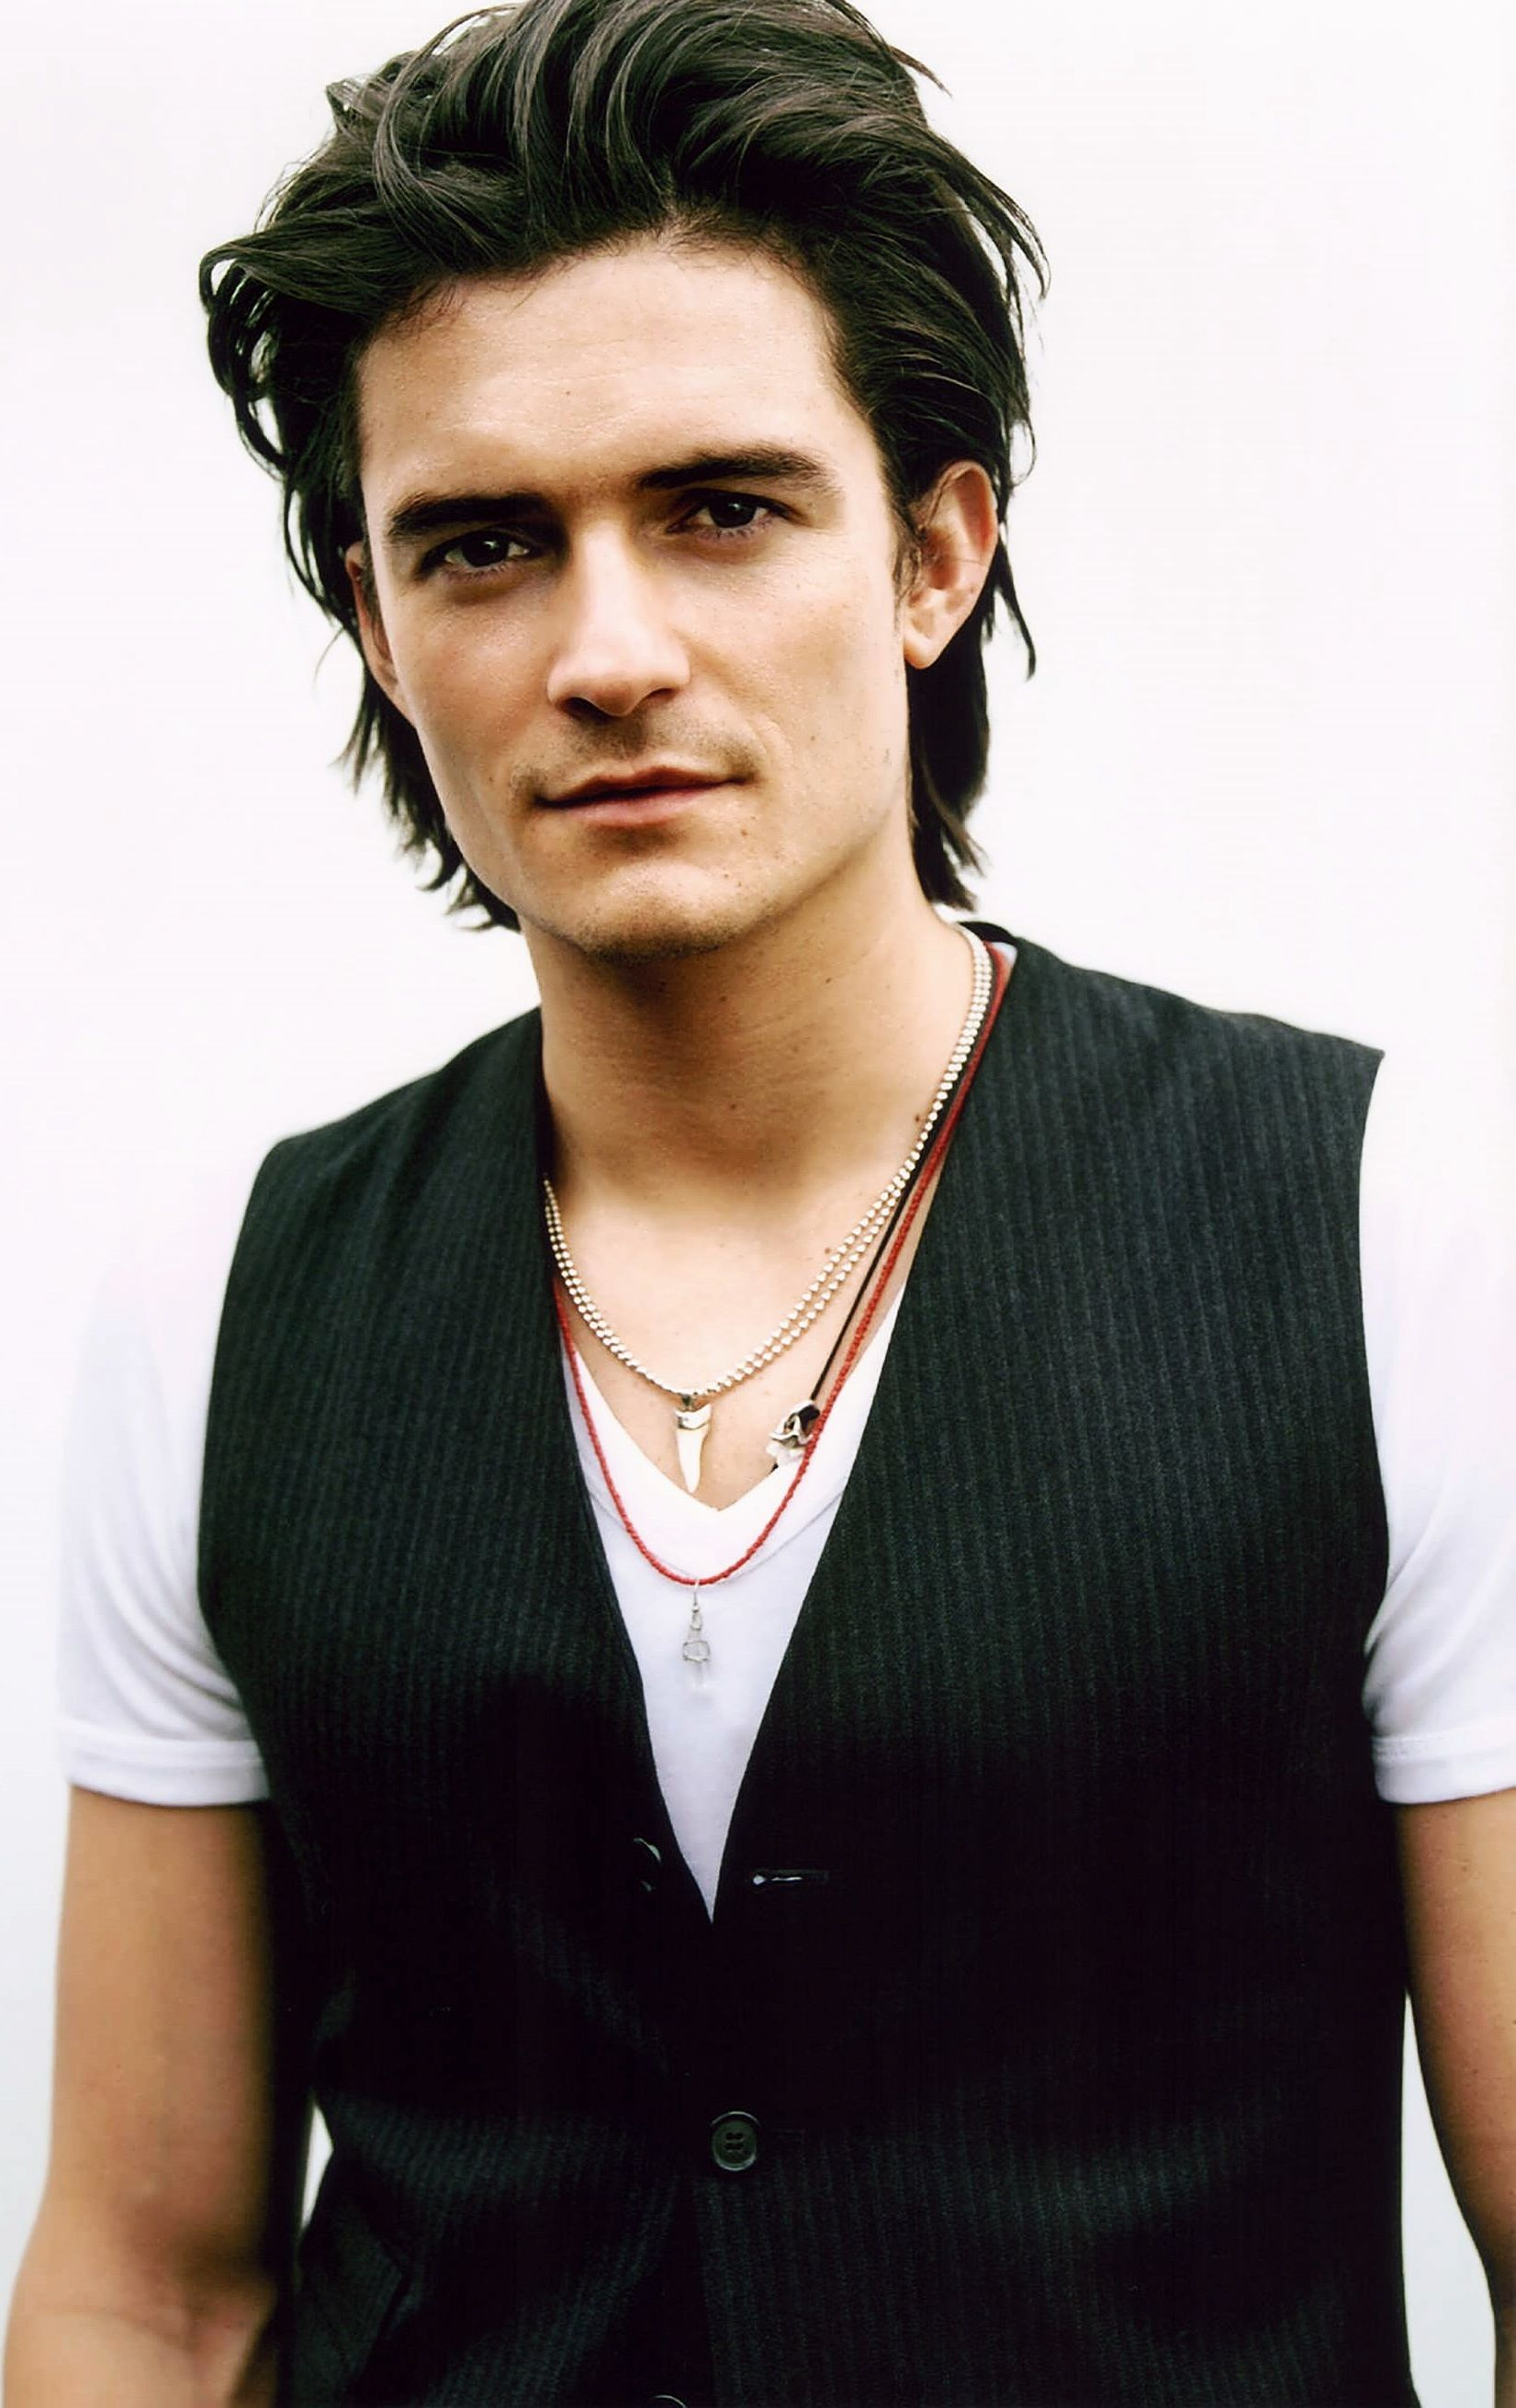 orlando bloom - photo #35